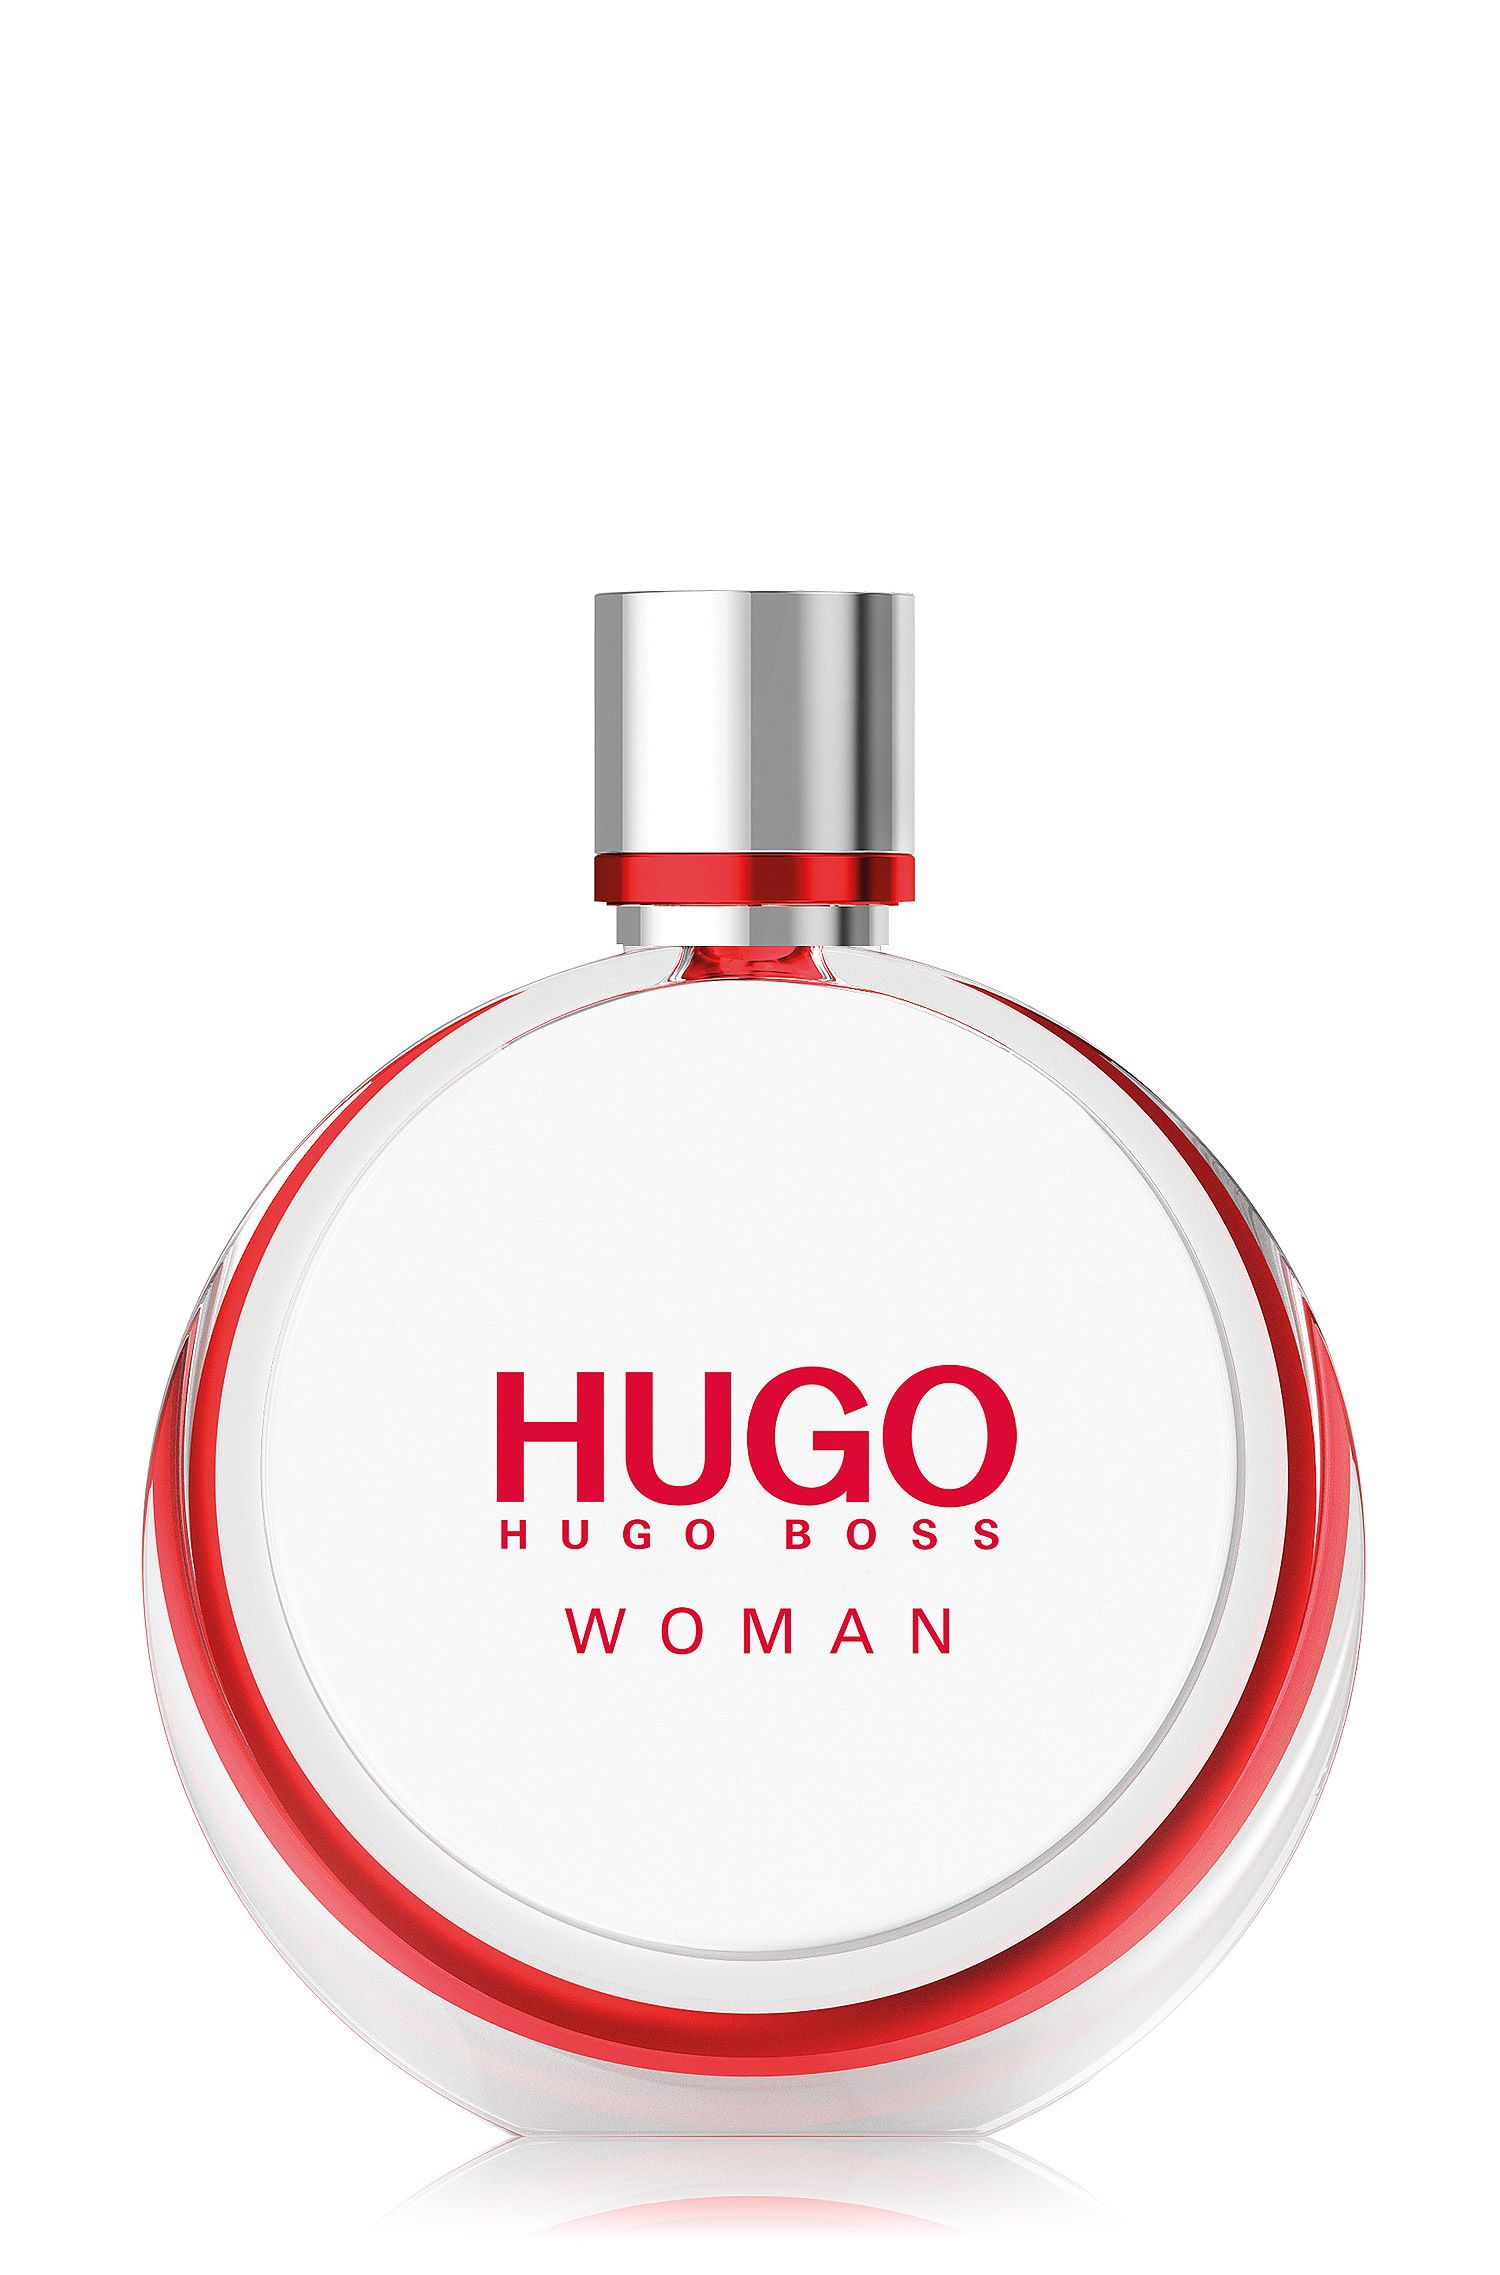 2.5 oz (75 mL) Eau de Parfum | HUGO Woman